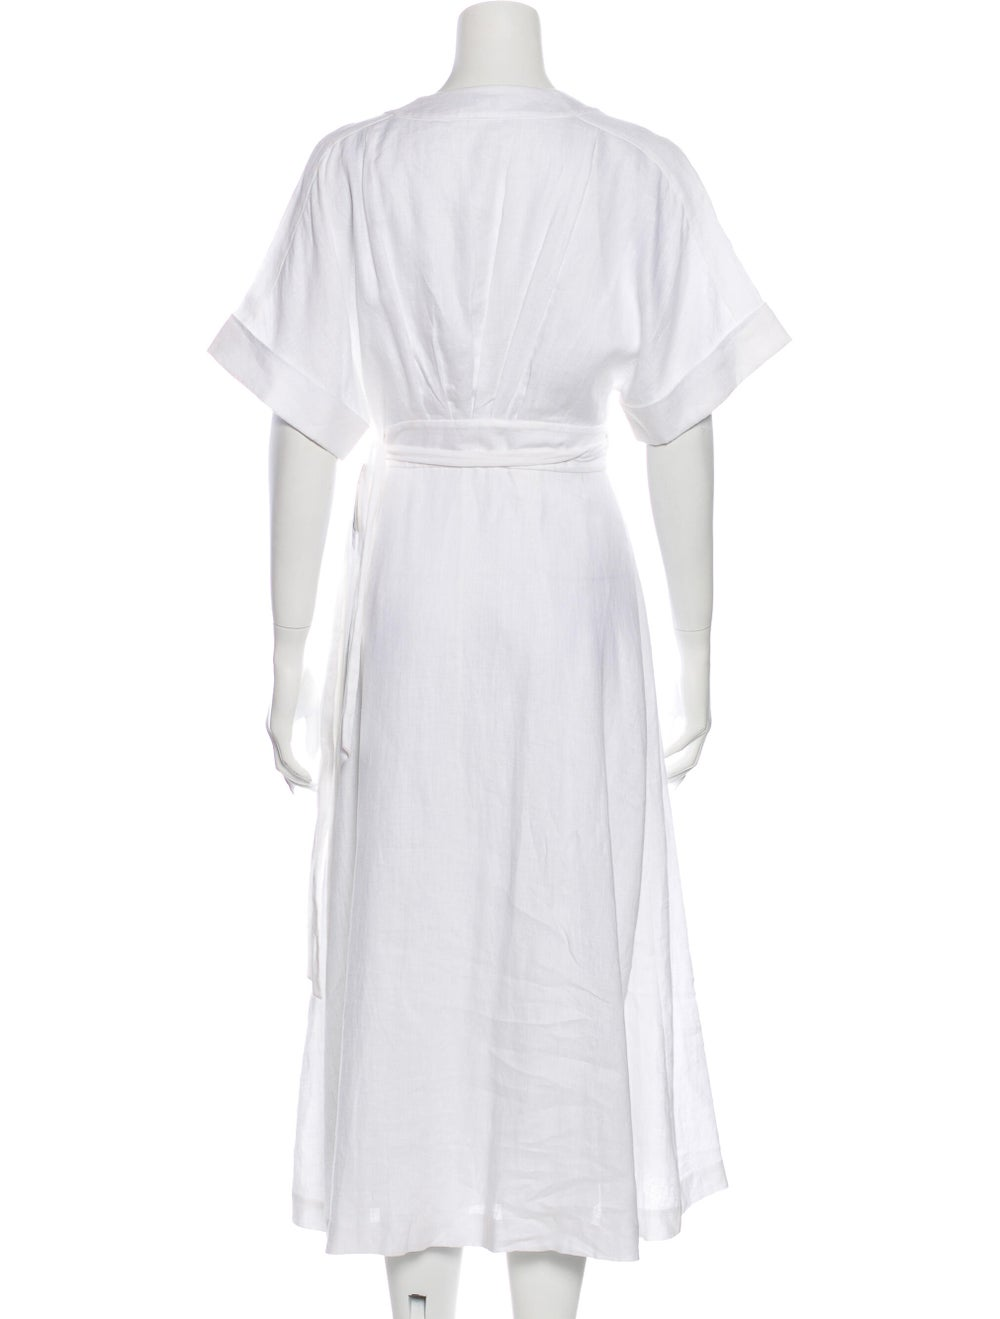 Reformation Linen Long Dress w/ Tags White - image 3